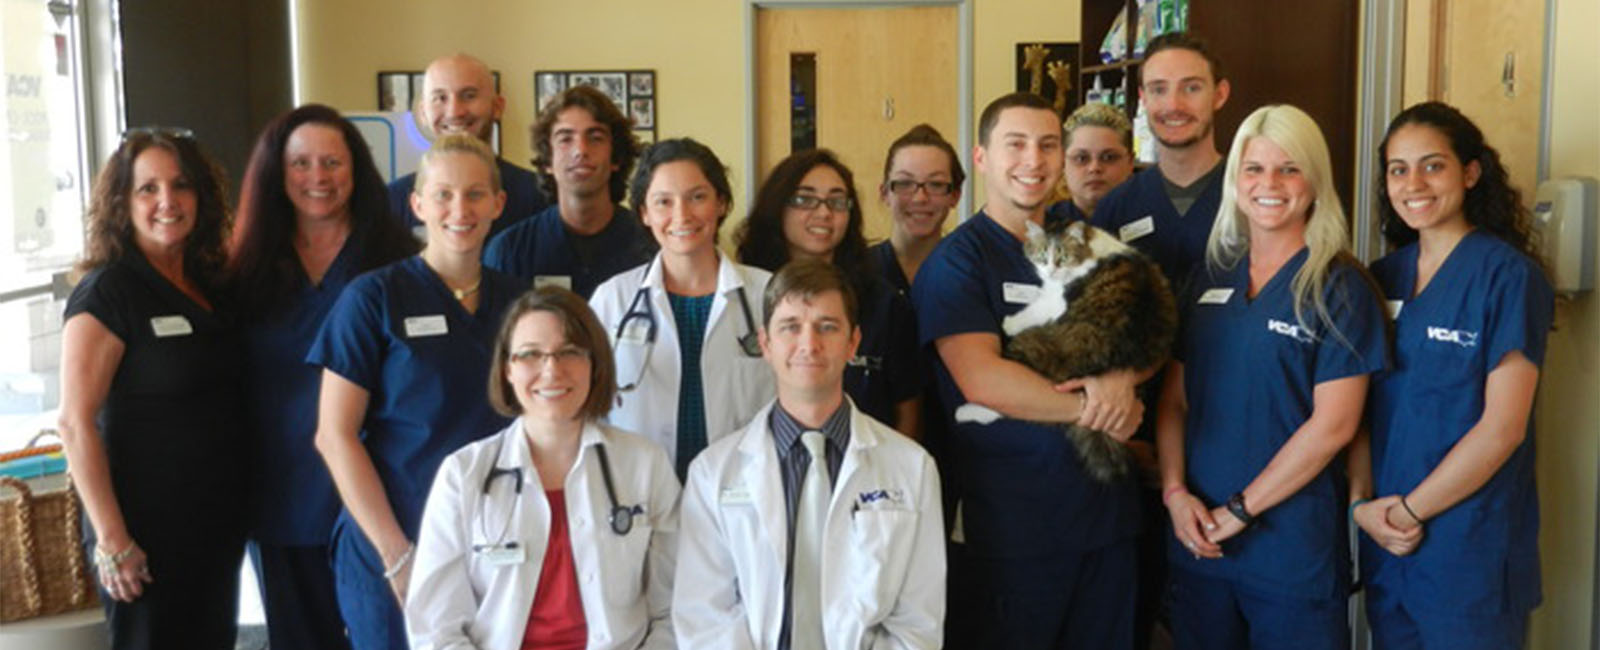 Homepage Team Picture of VCA Rock Creek Animal Hospital